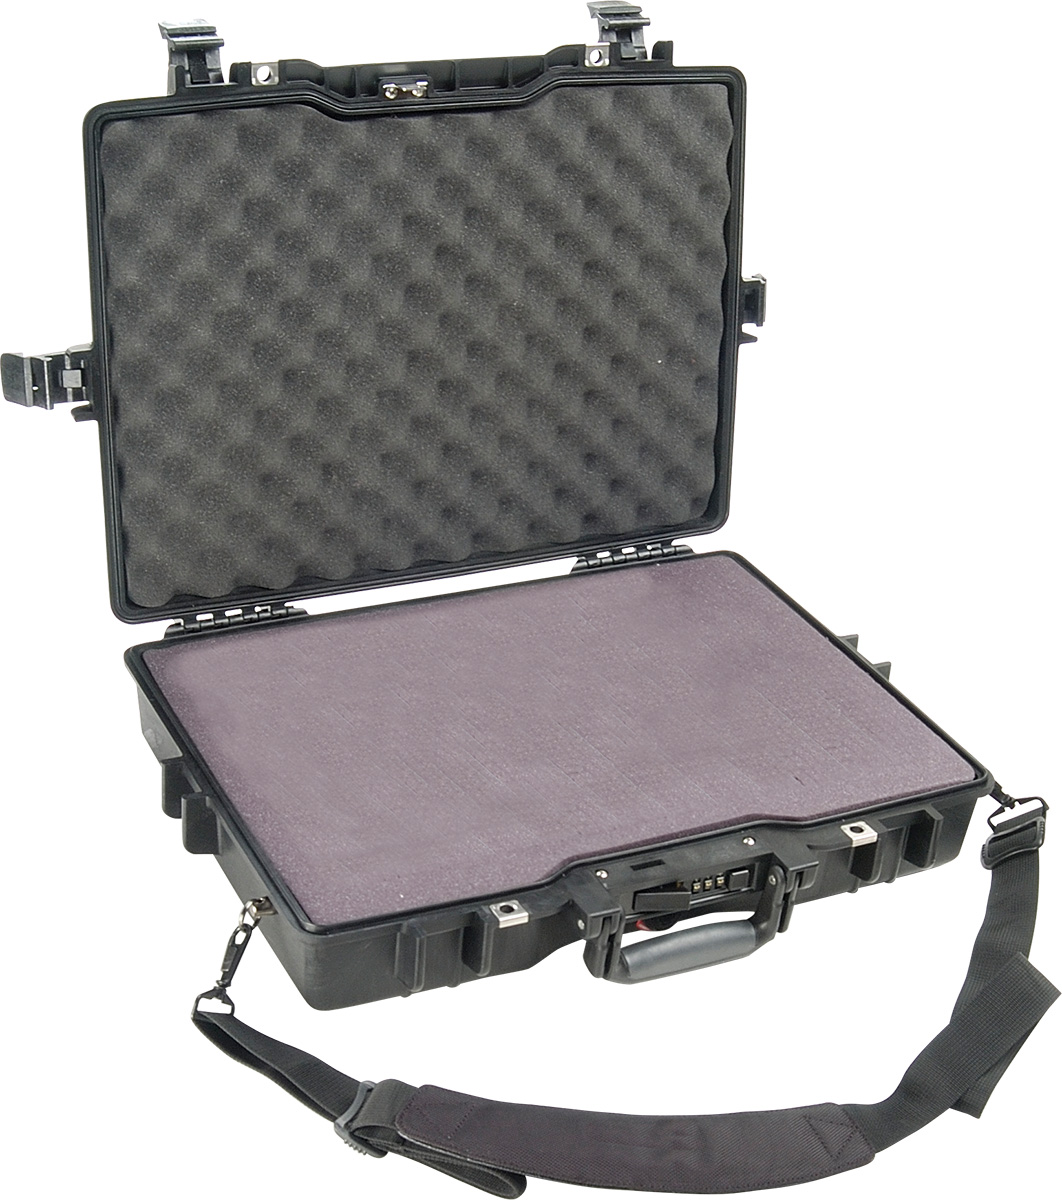 hight resolution of pelican 1495 waterproof laptop carrying case